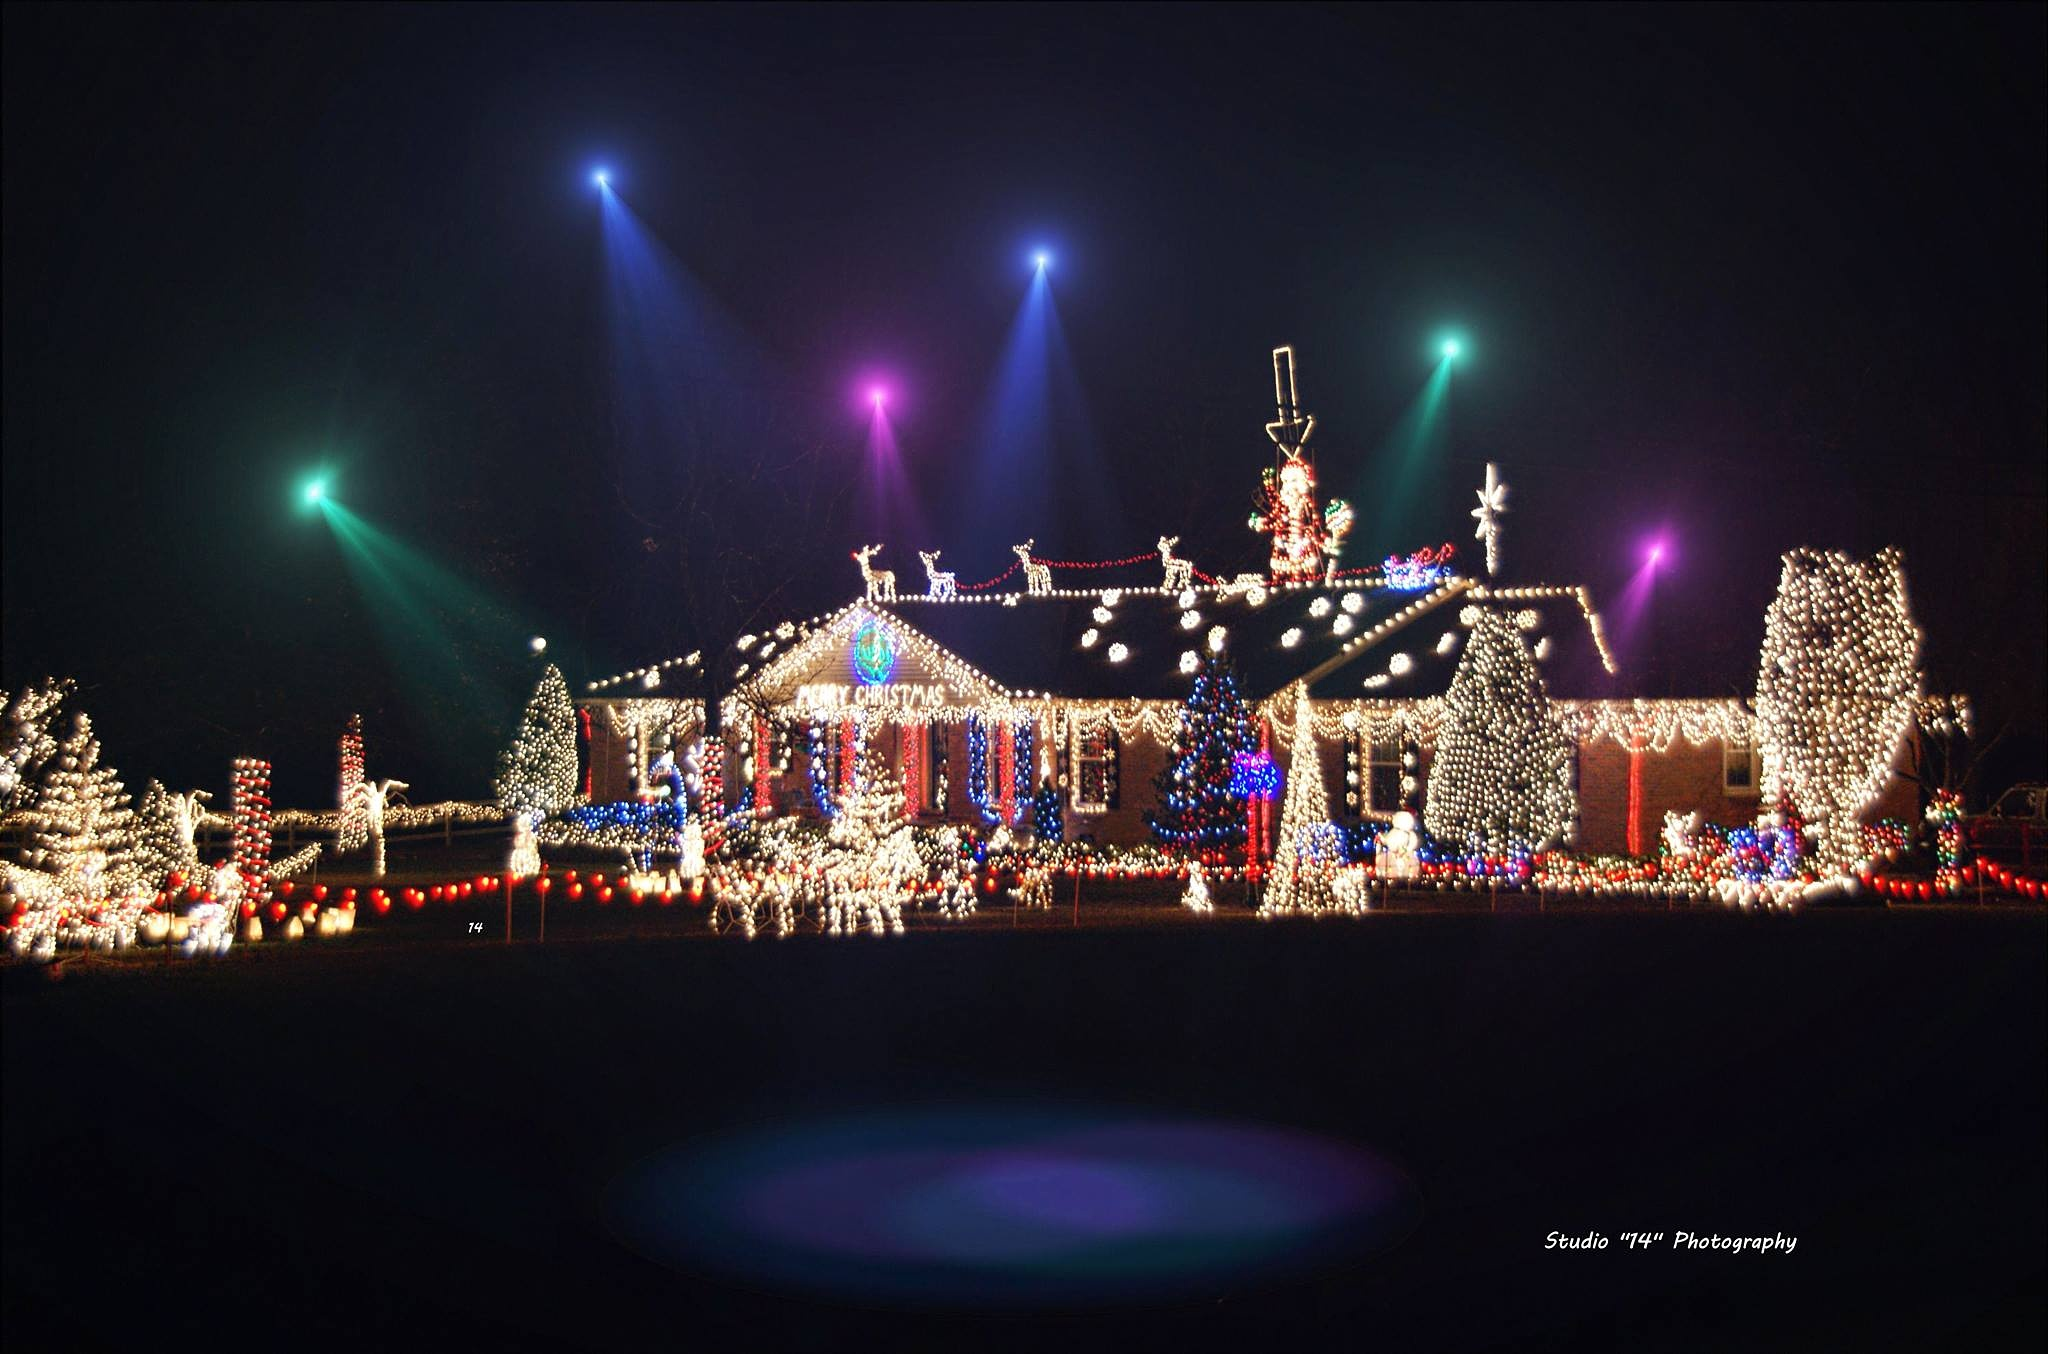 Merry Christmas by Gary Cole